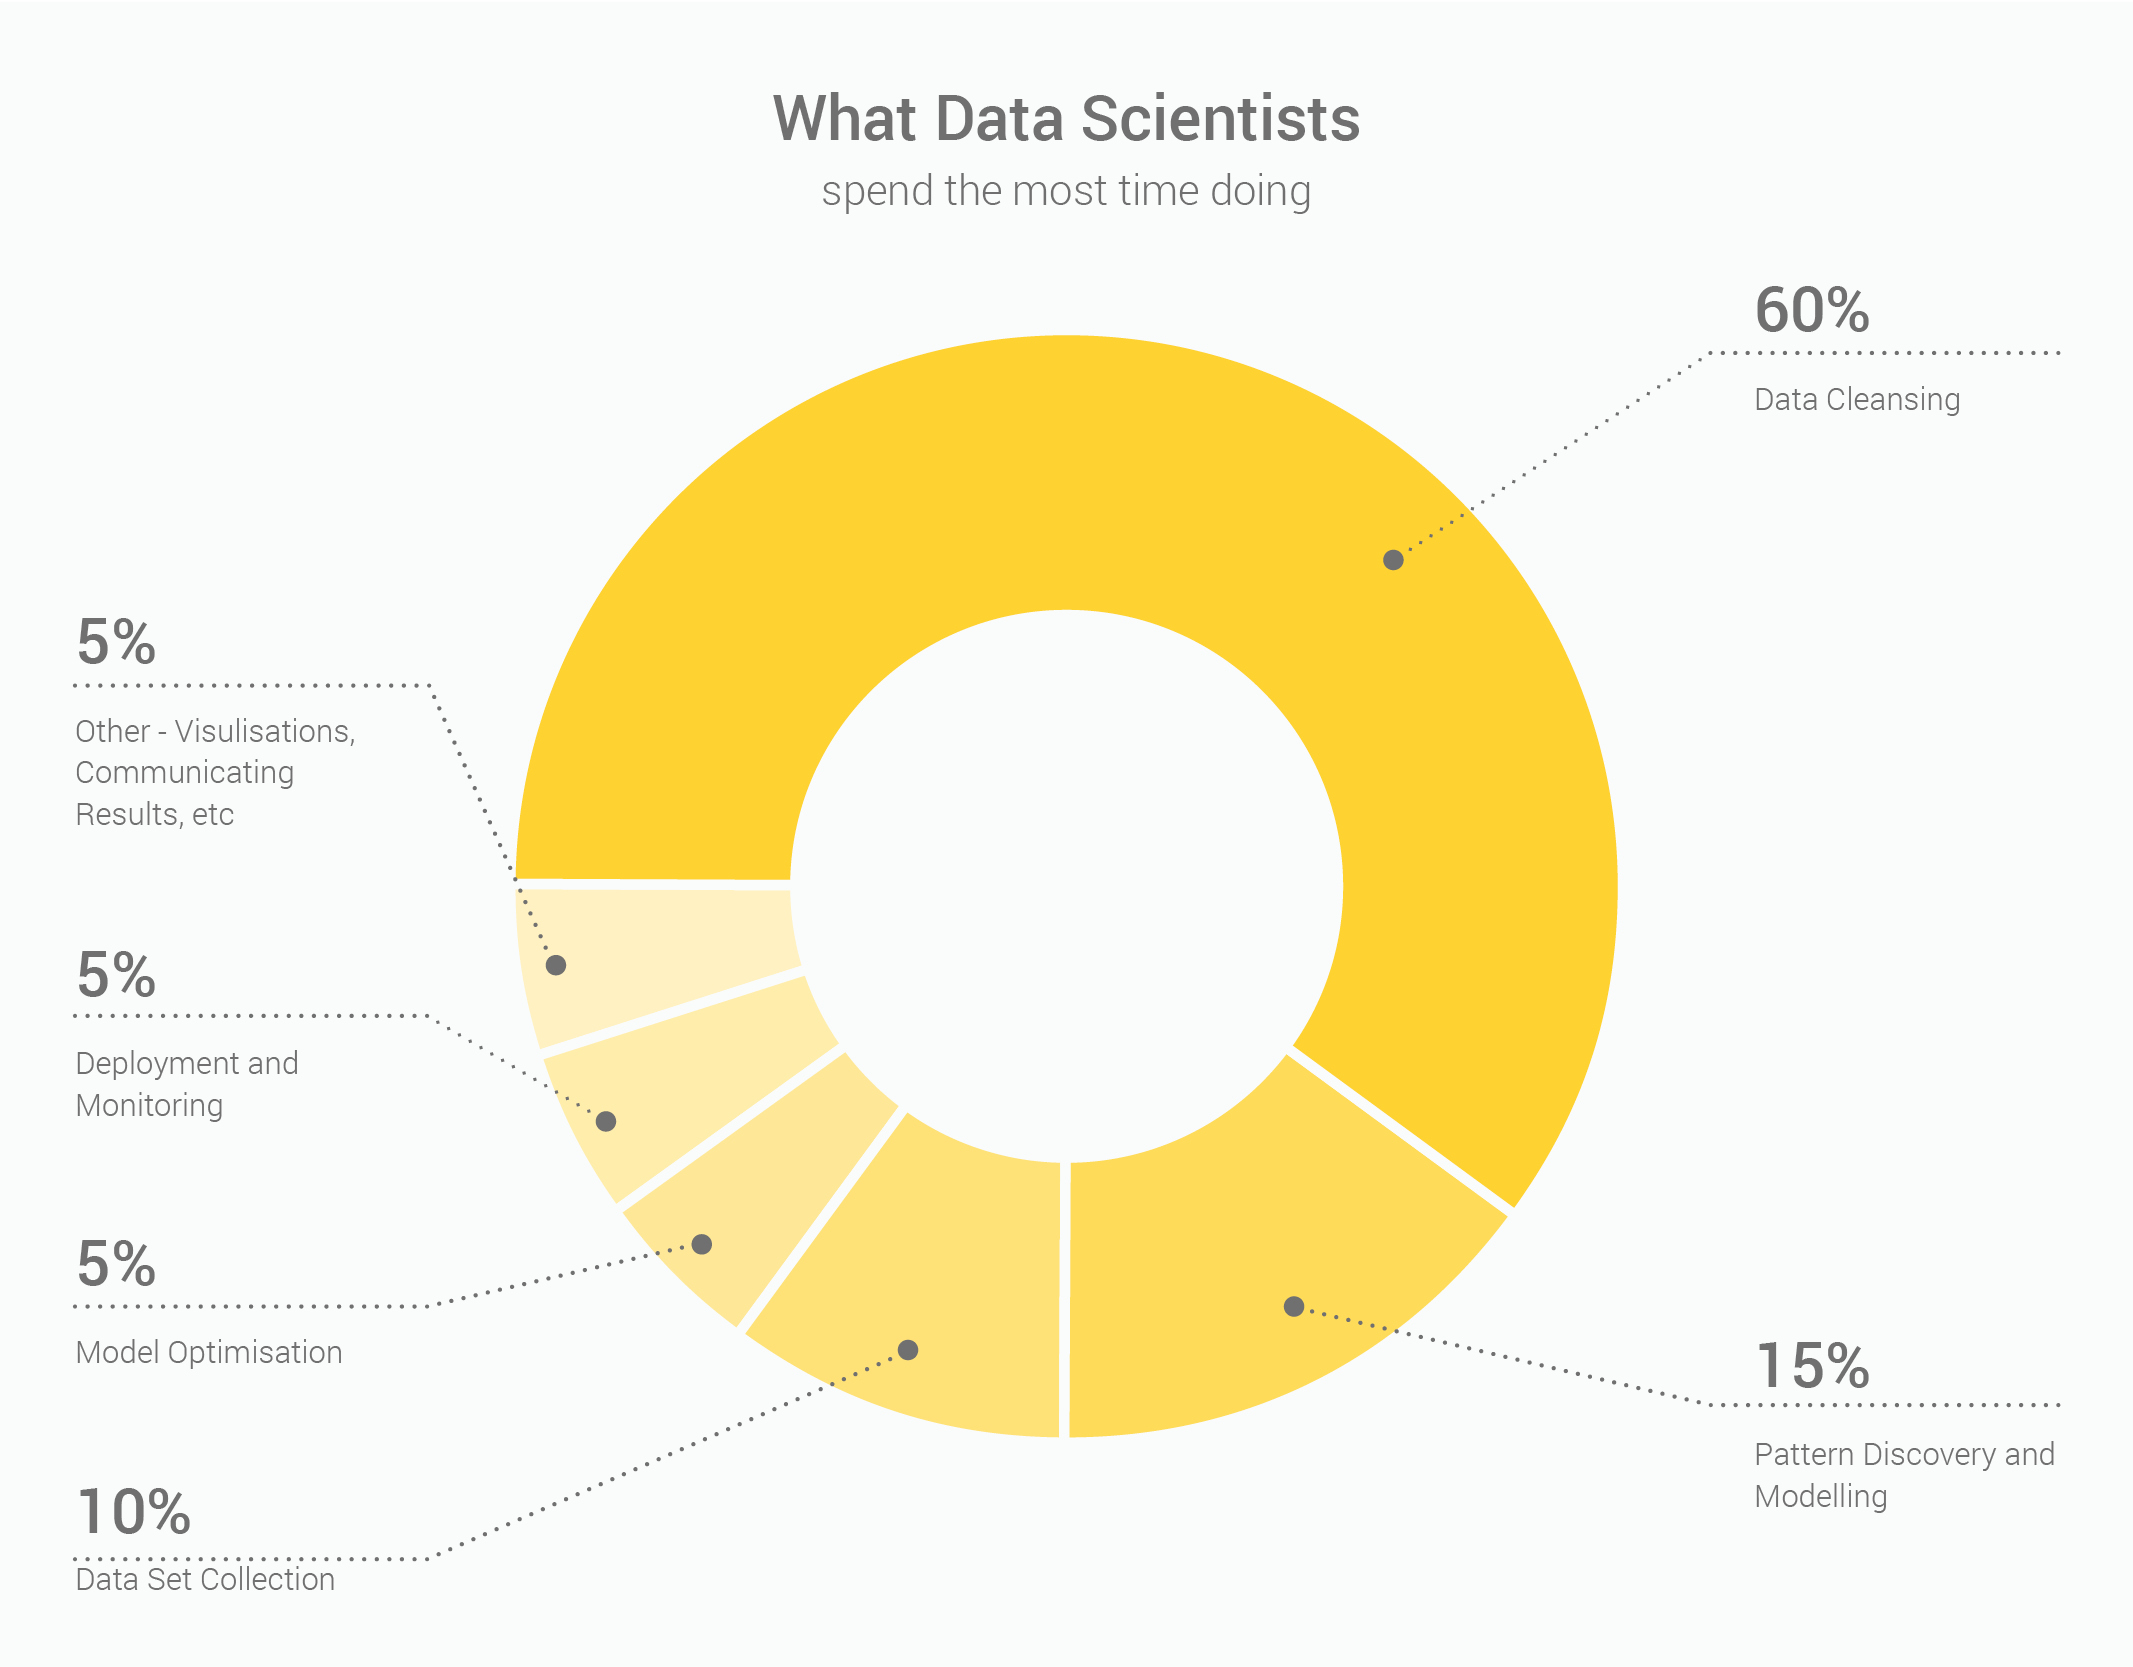 What data scientists spend the most time doing diagram